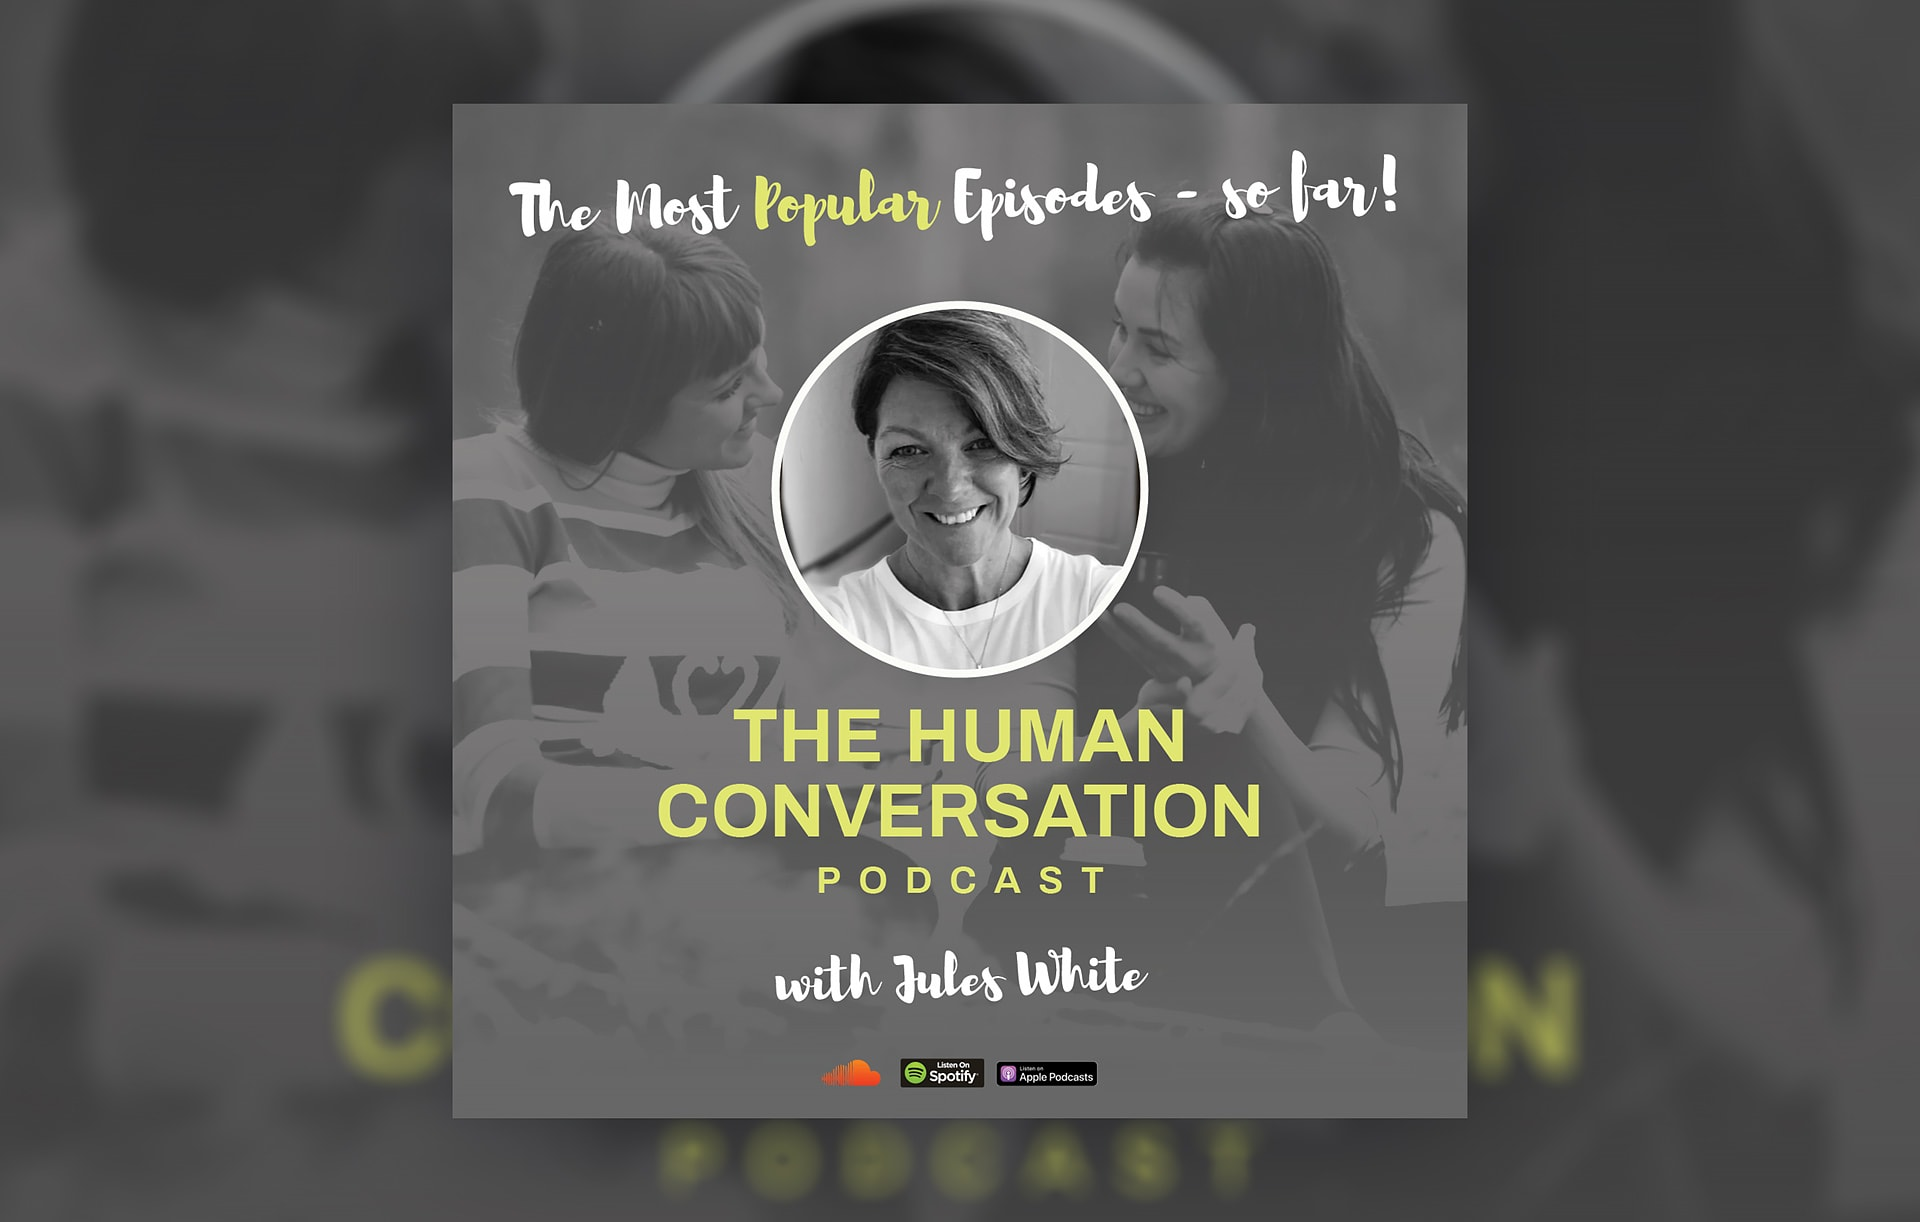 Tribe Storytelling: What's the Story? - Podcast Interview with Jules White, the Human Conversation